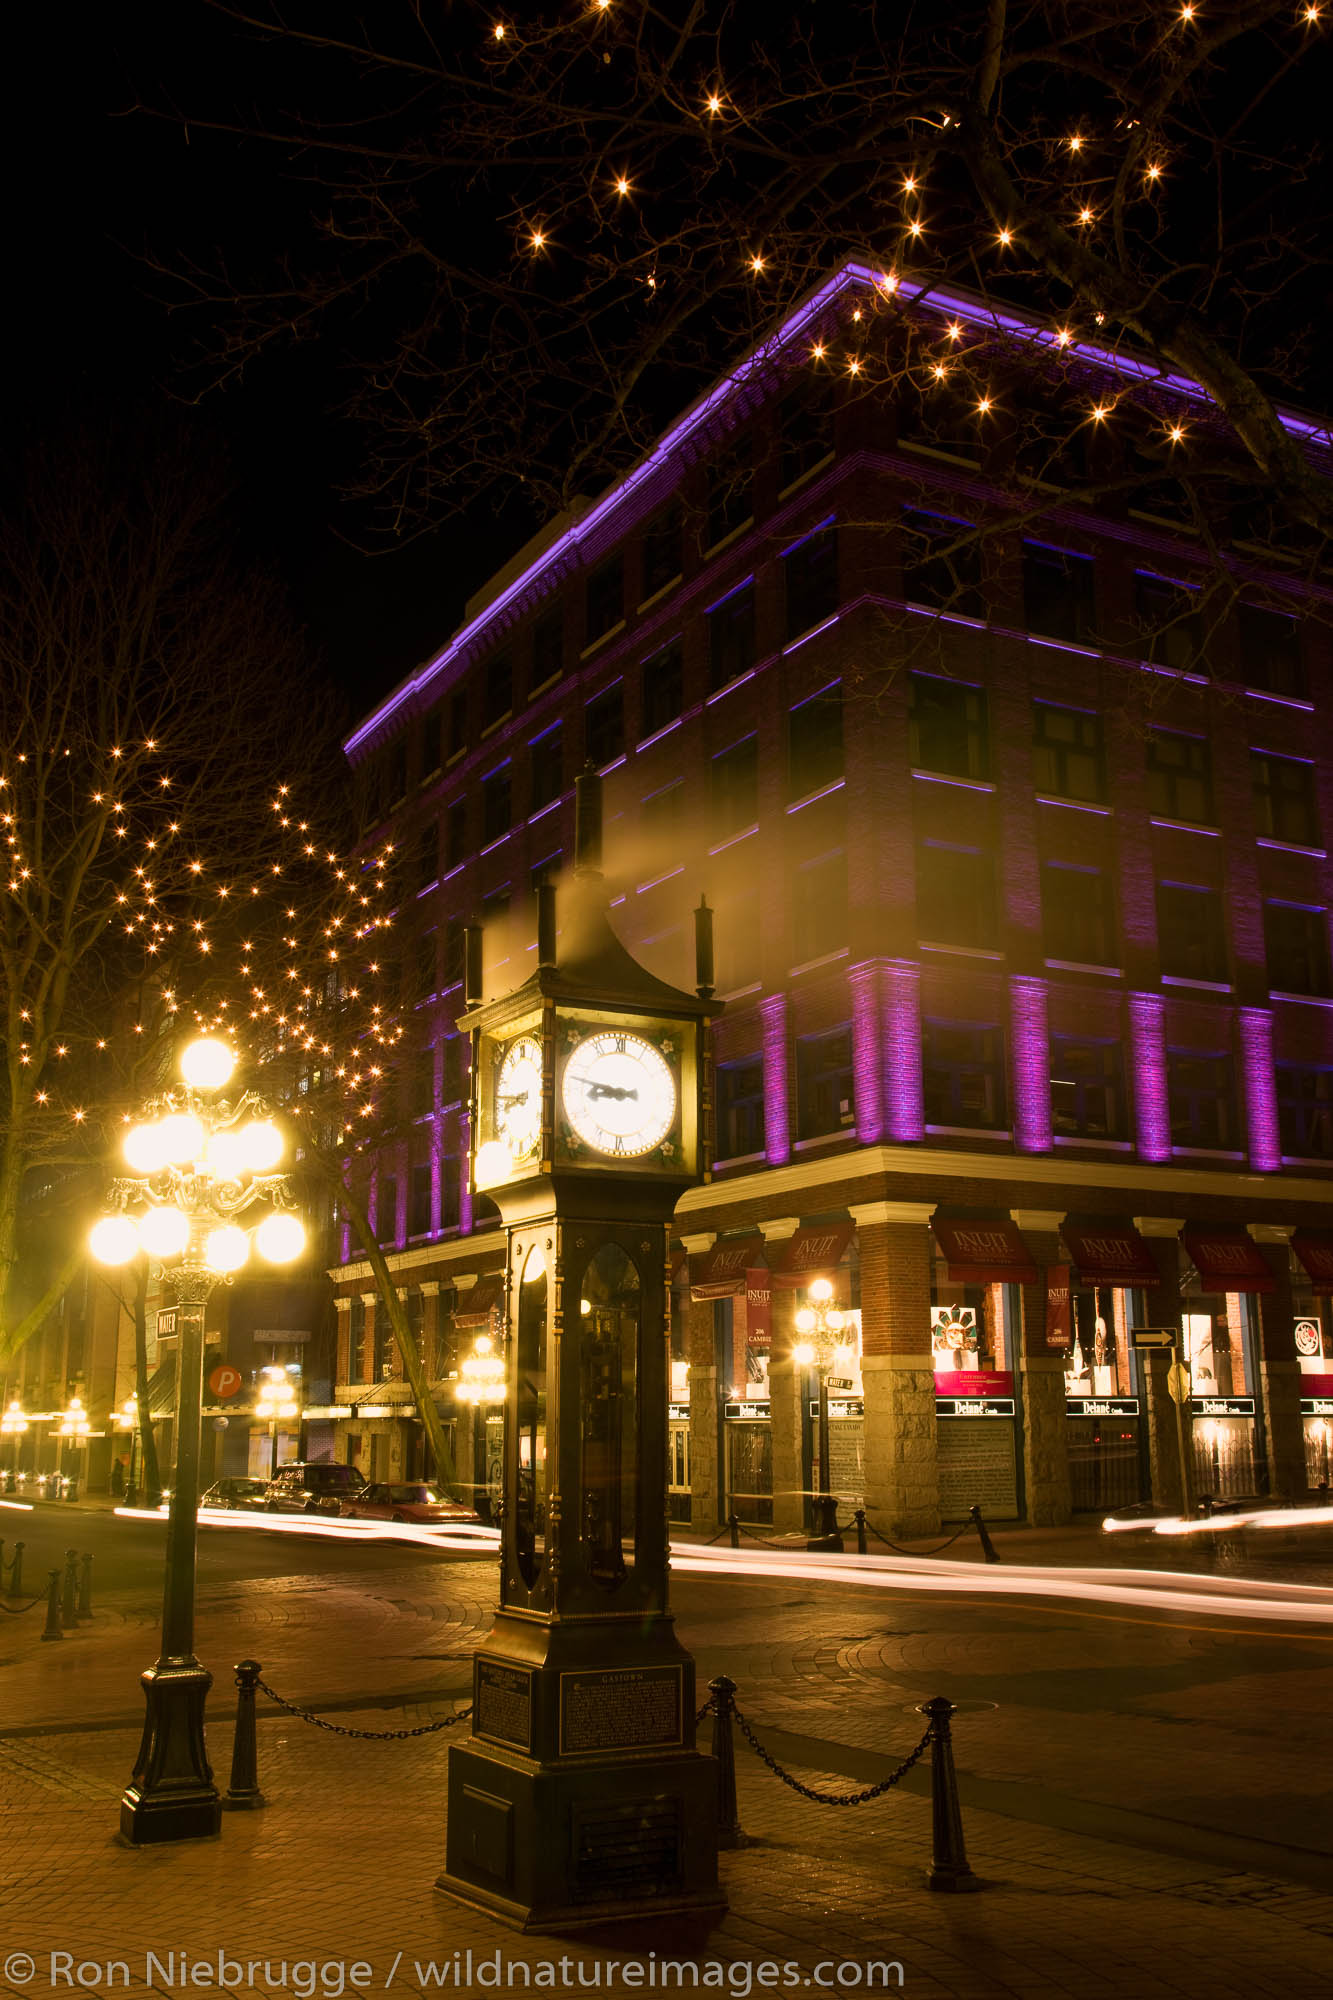 The historic steam powered clock in the Gastown area, Vancouver, British Columbia, Canada.